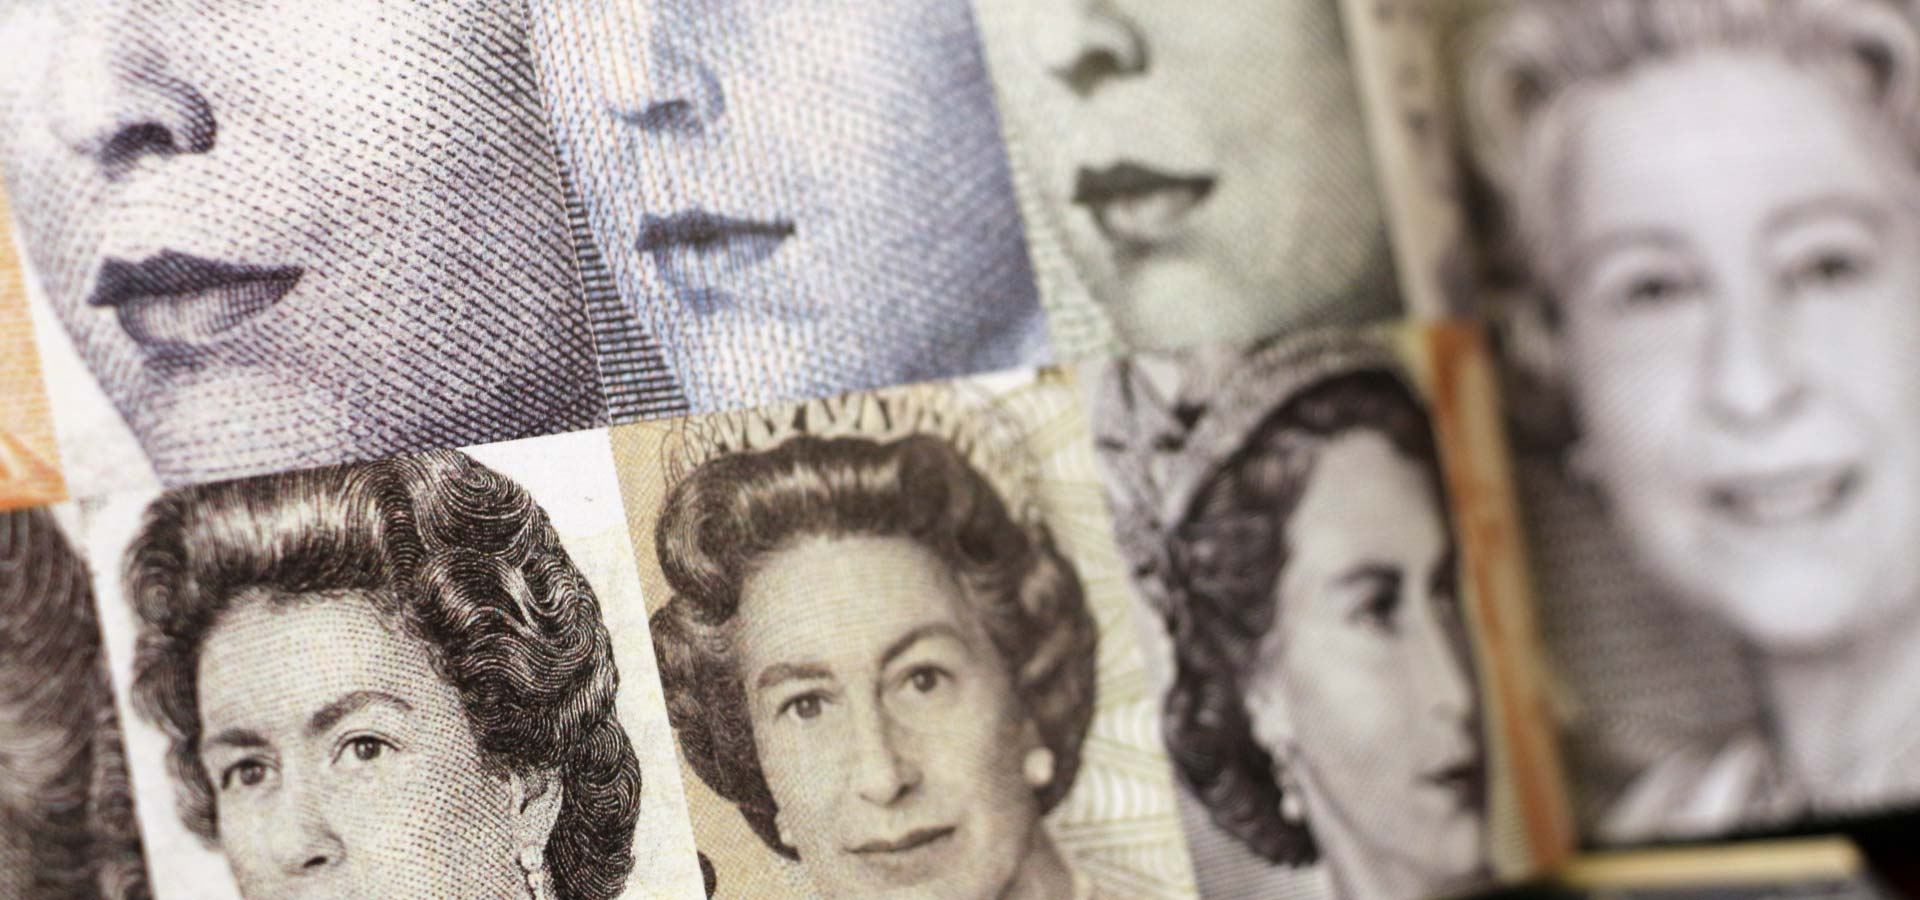 Queen Elizabeth II portraits in currency